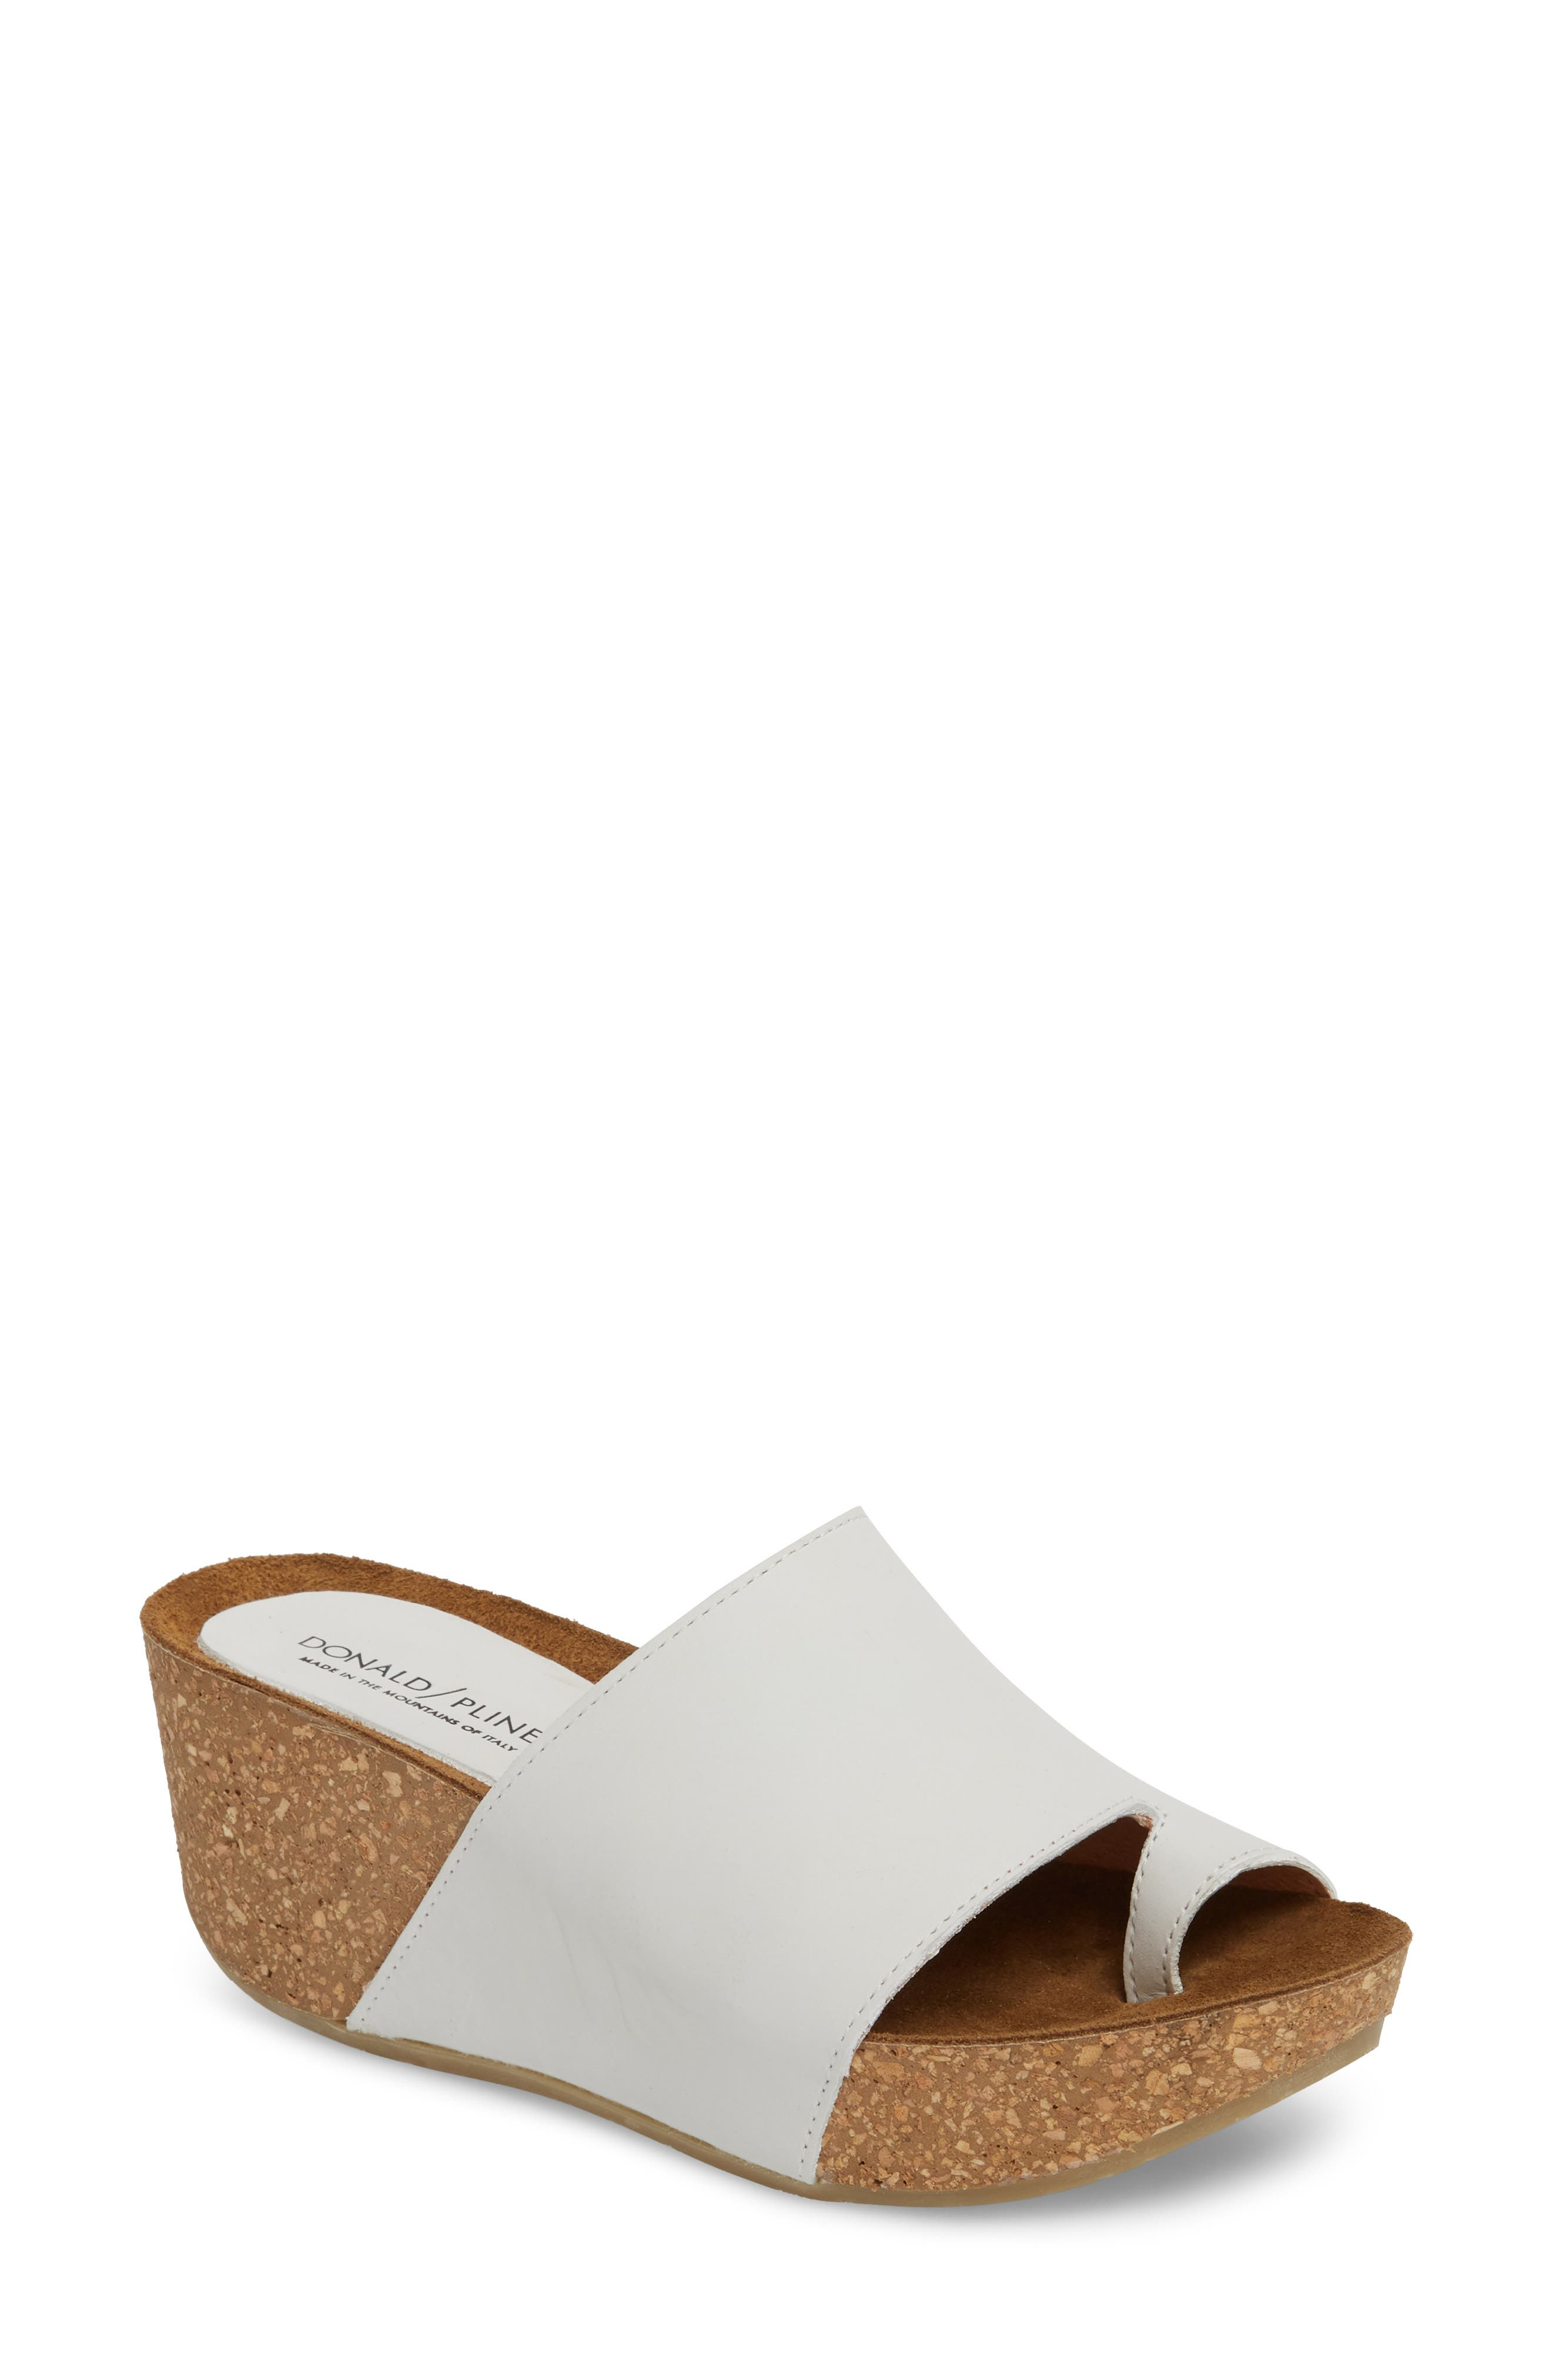 Donald J Pliner Ginie Platform Wedge Sandal,                             Main thumbnail 3, color,